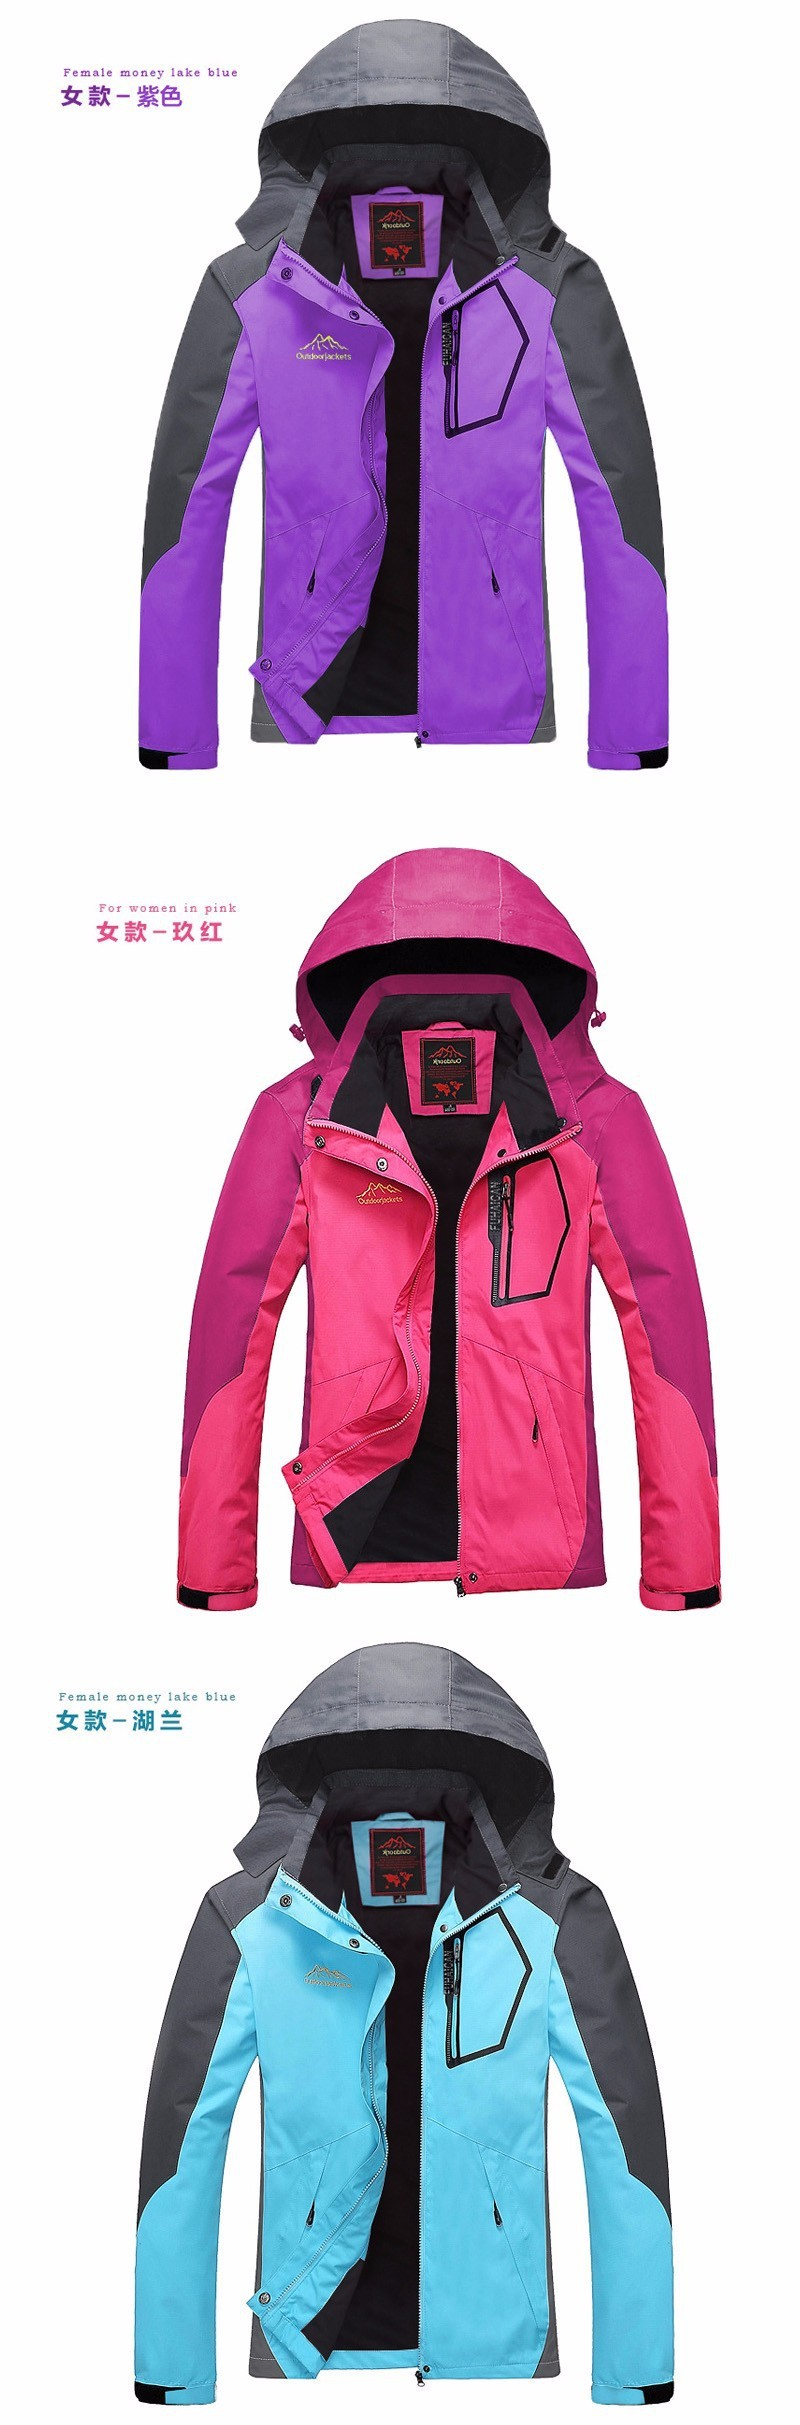 outdoor jacket 1211 4